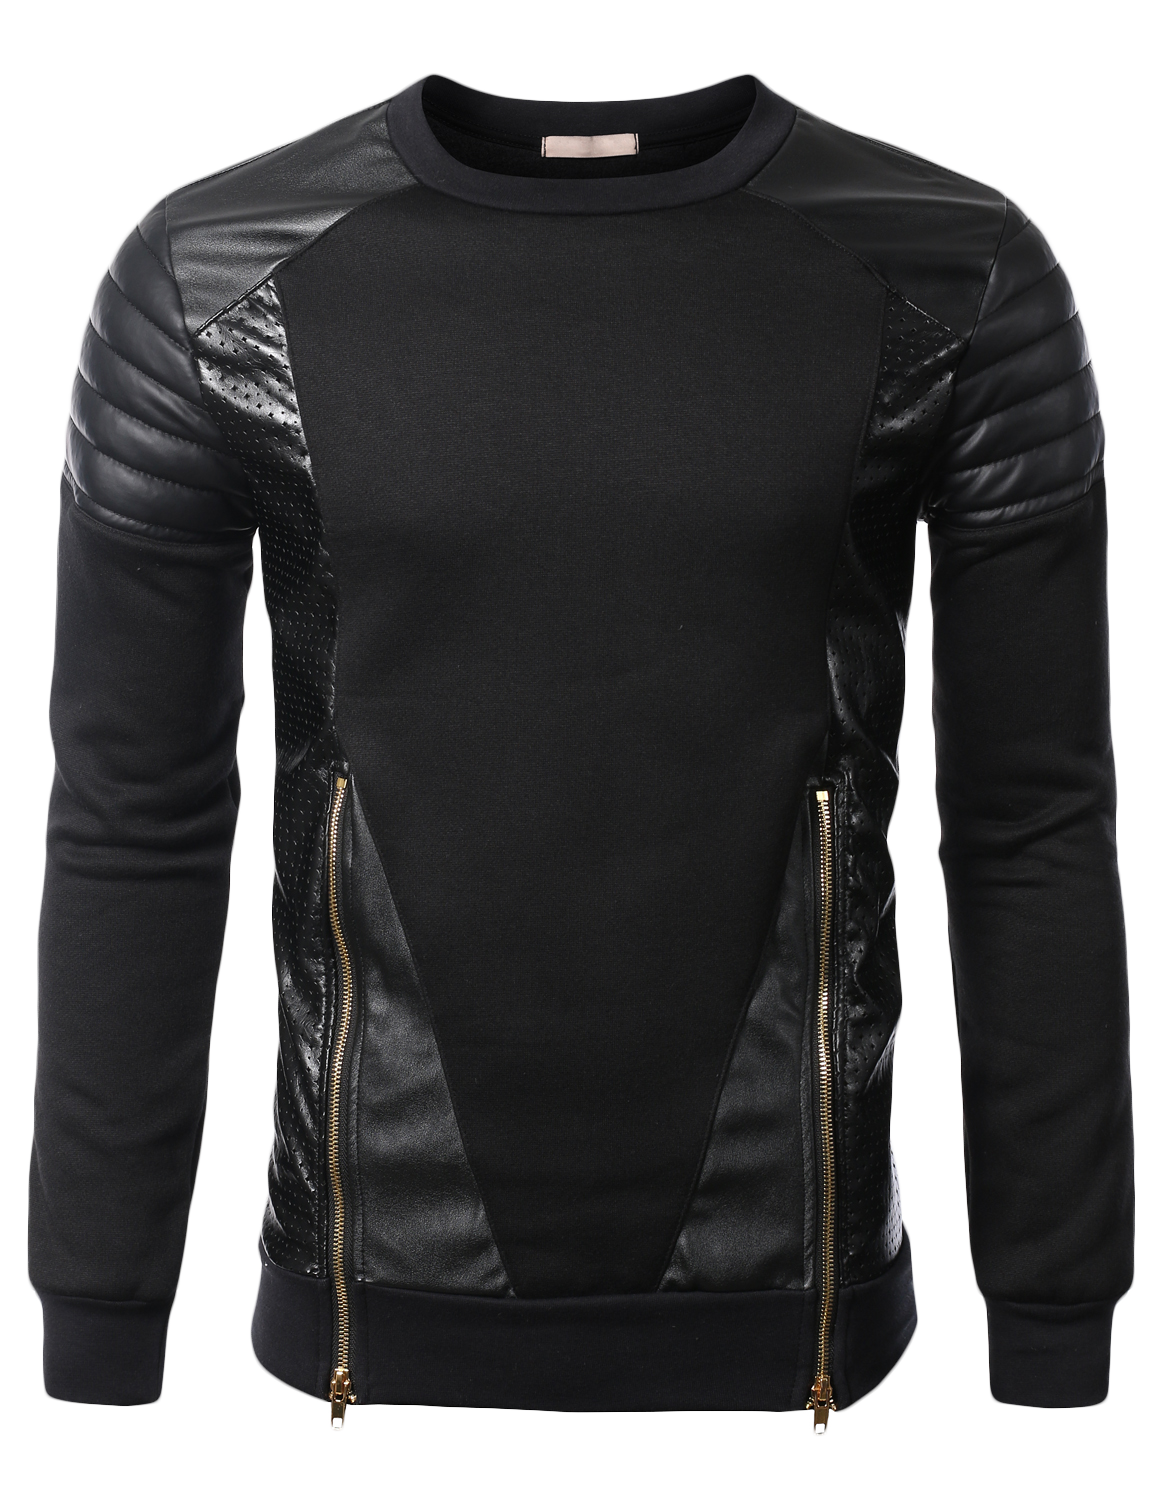 b4f256591648 SMITHJAY Mens Hip-Hop Leather Padding Power Shoulder Sweatshirt w  Zipper  Trim  smithjay